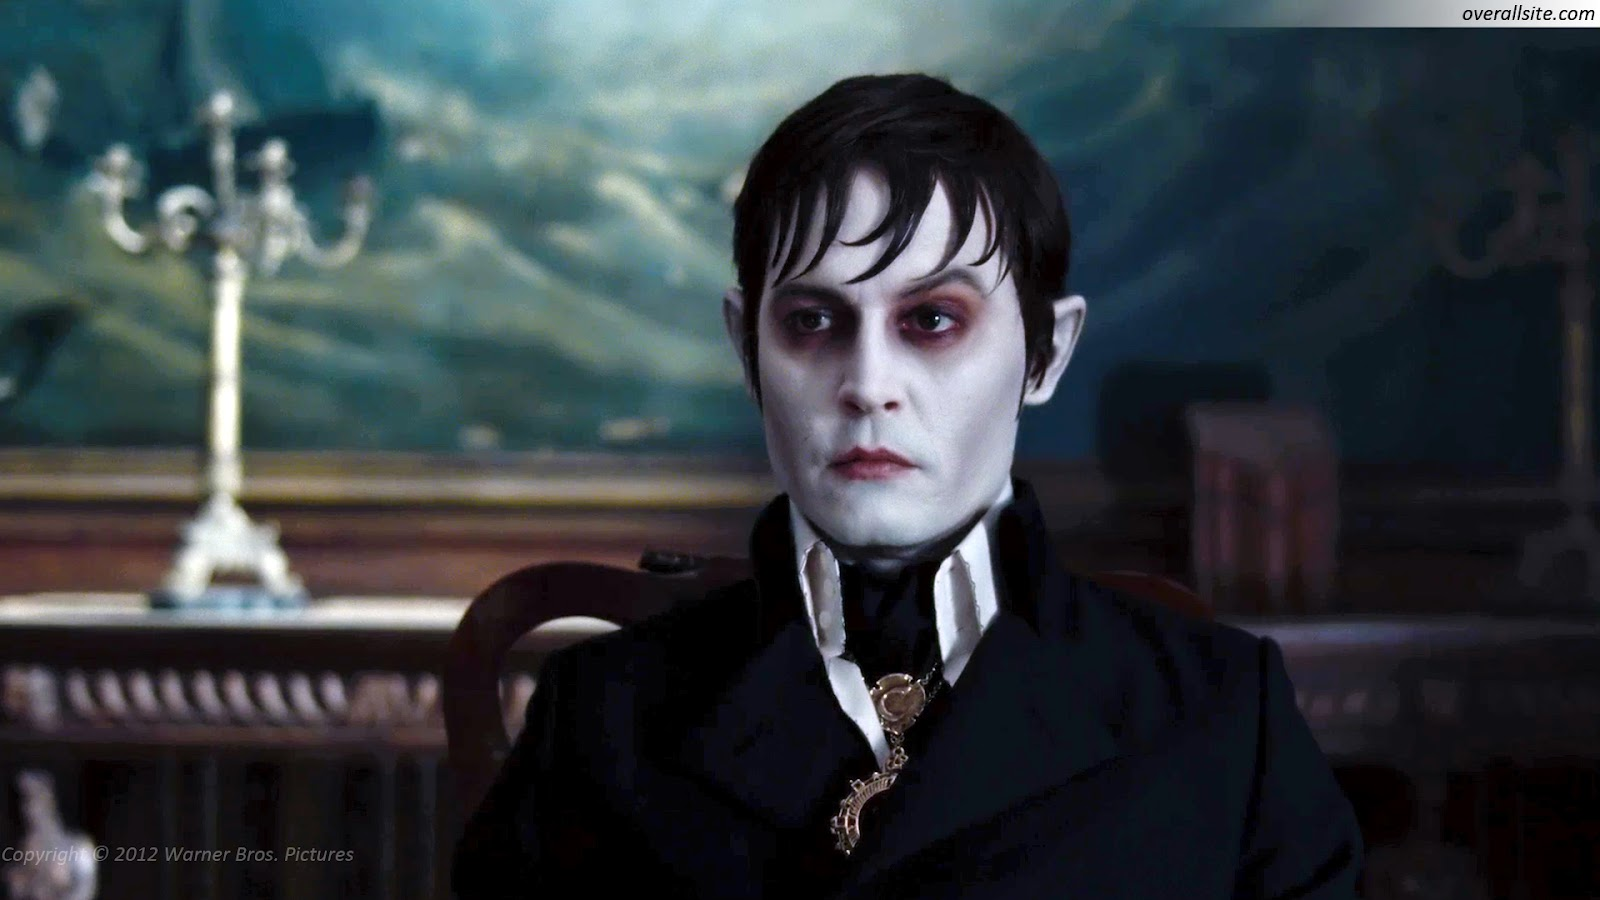 Dark shadows Wallpapers de la pelicula movie Fondo de Pantalla HD 1600x900